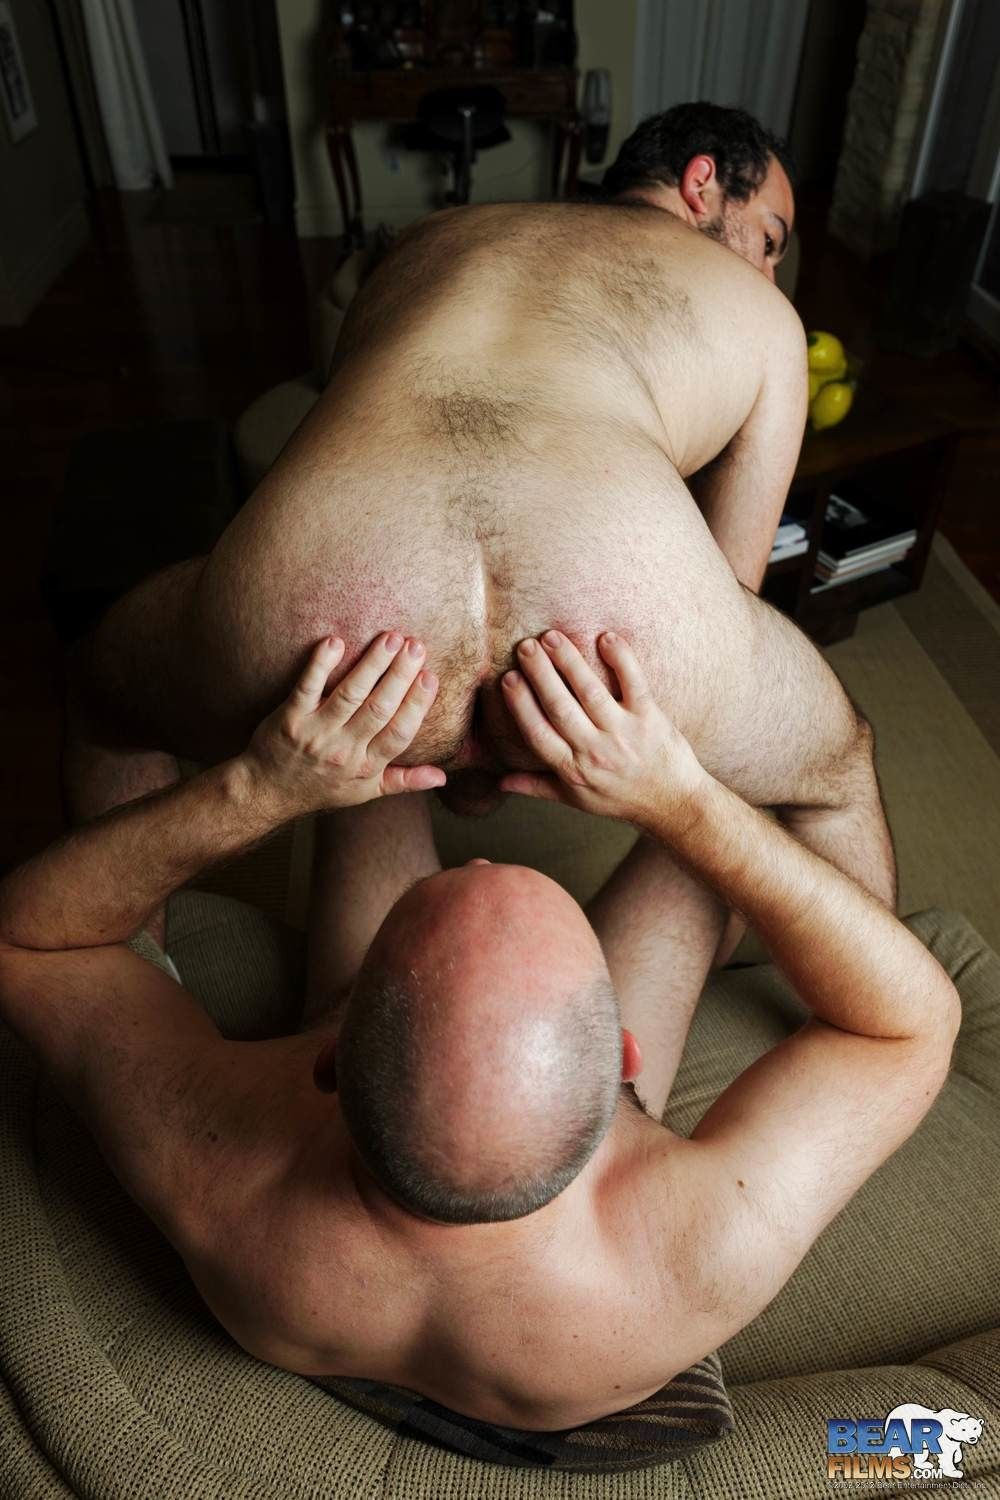 homo fuck buddies for life sex with real escort